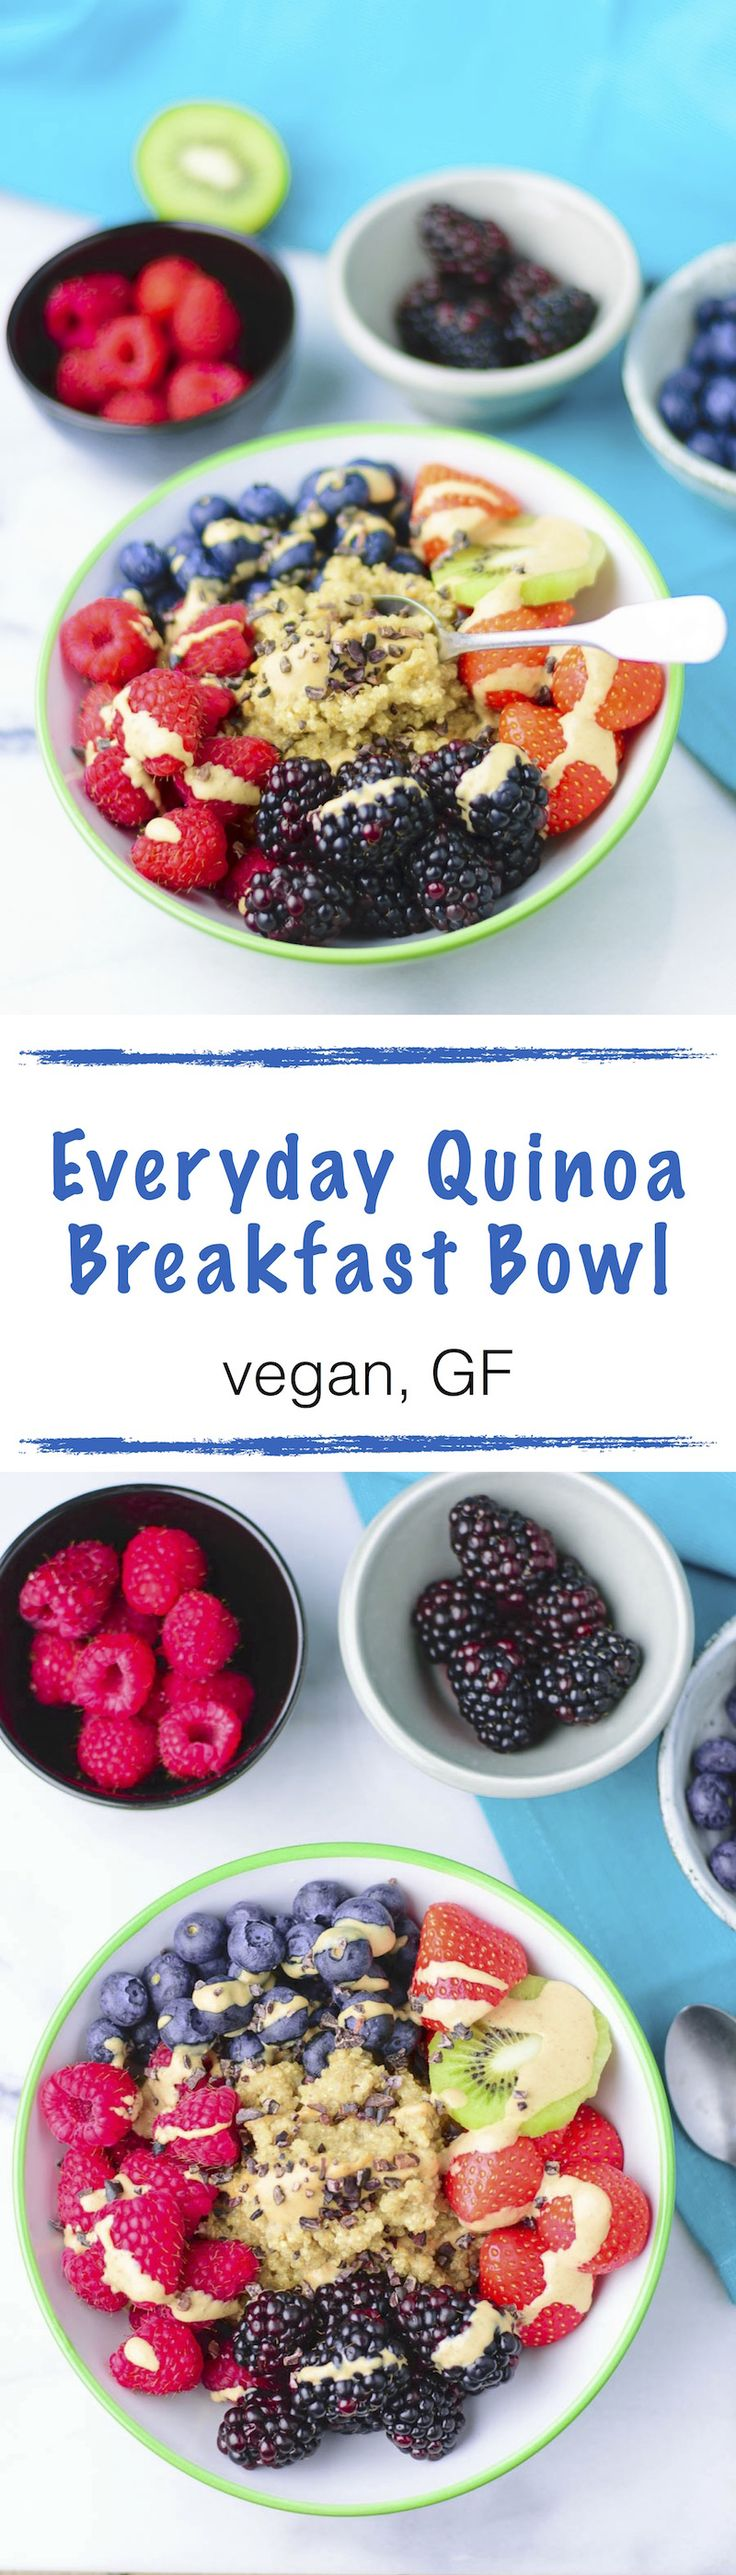 My easy Everyday Quinoa Breakfast Bowl is an awesome way to have #quinoa for breakfast. It's a #vegan and #glutenfree recipe that combines quinoa cooked in almond milk with fresh fruit and a sprinkle of nut butter. Charge your batteries to full with this breakfast quinoa.